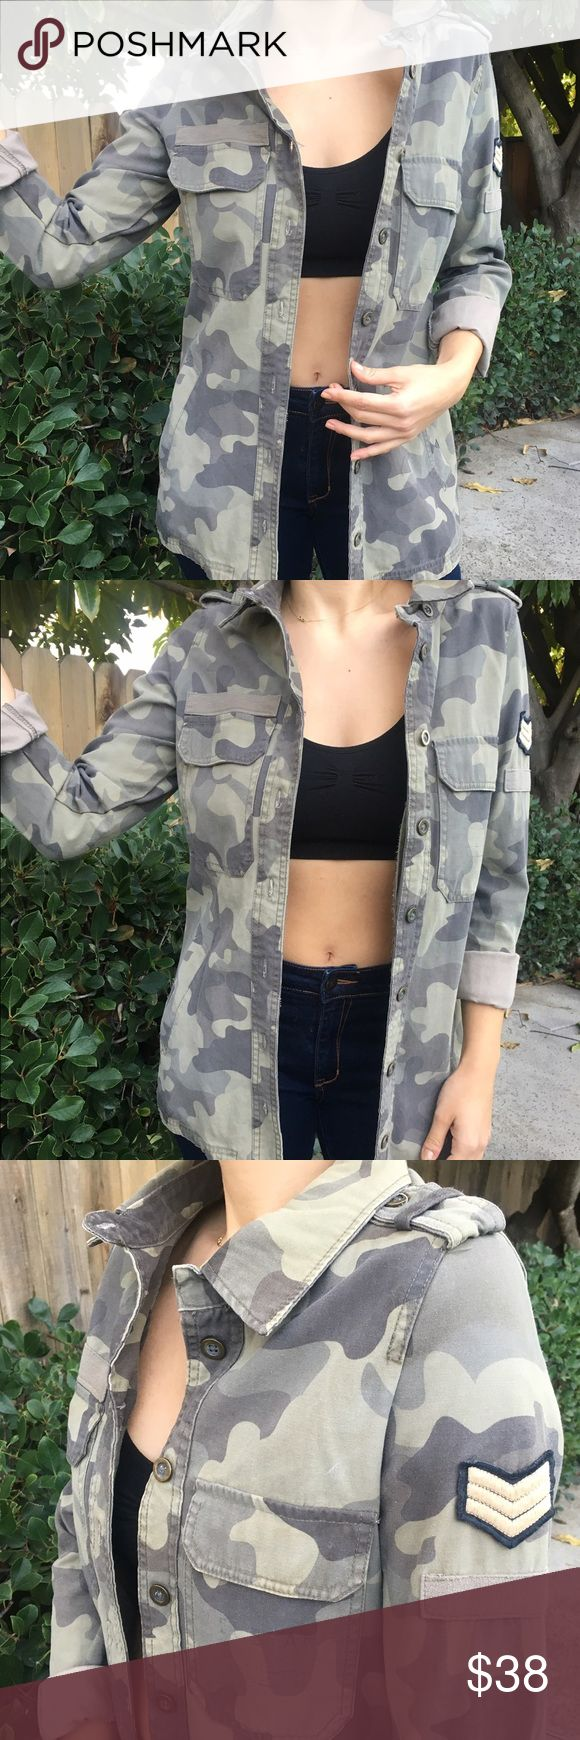 Button down camouflage shirt / jacket Button down camouflage shirt / jacket  with sleeve patch and pockets. Can fold sleeves or wear them long. Long enough to wear with leggings. Cotton On Jackets & Coats